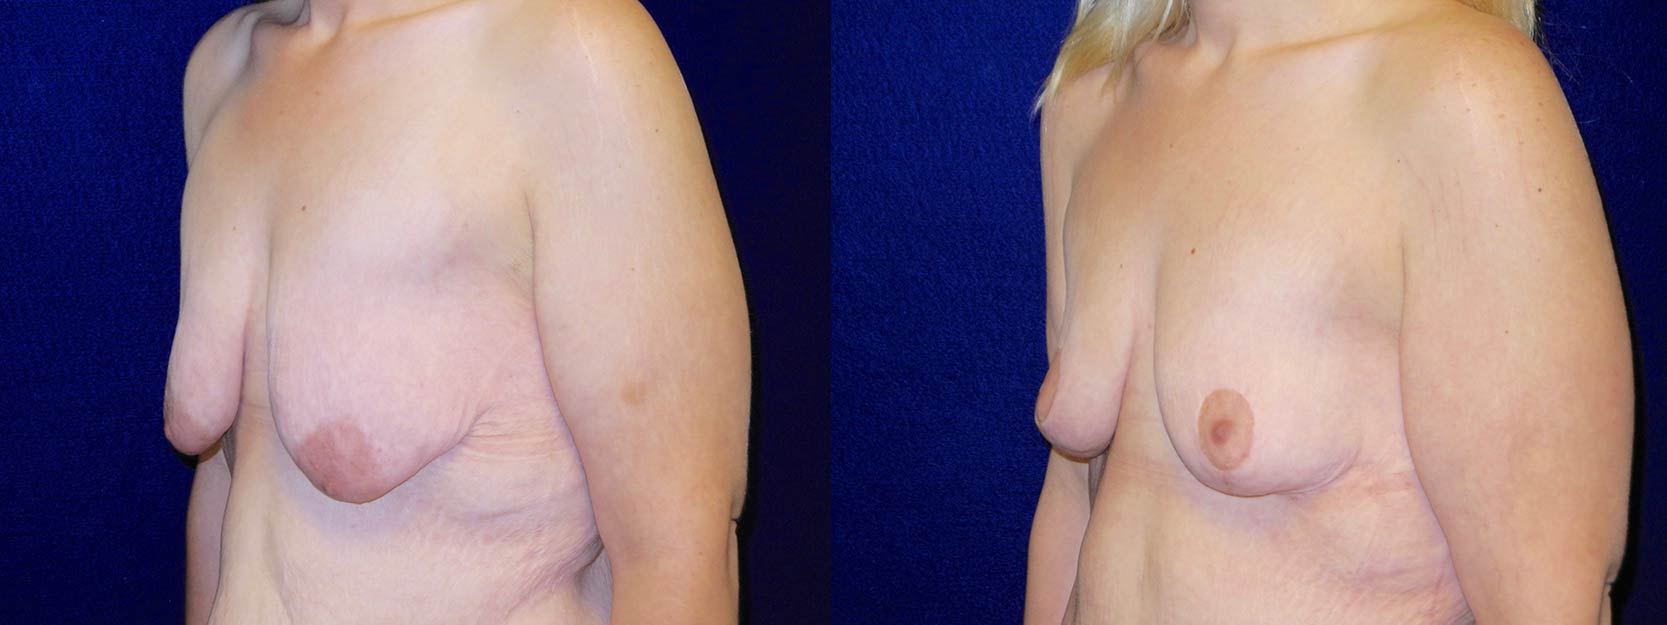 Left 3/4 View - Breast Lift After Weight Loss